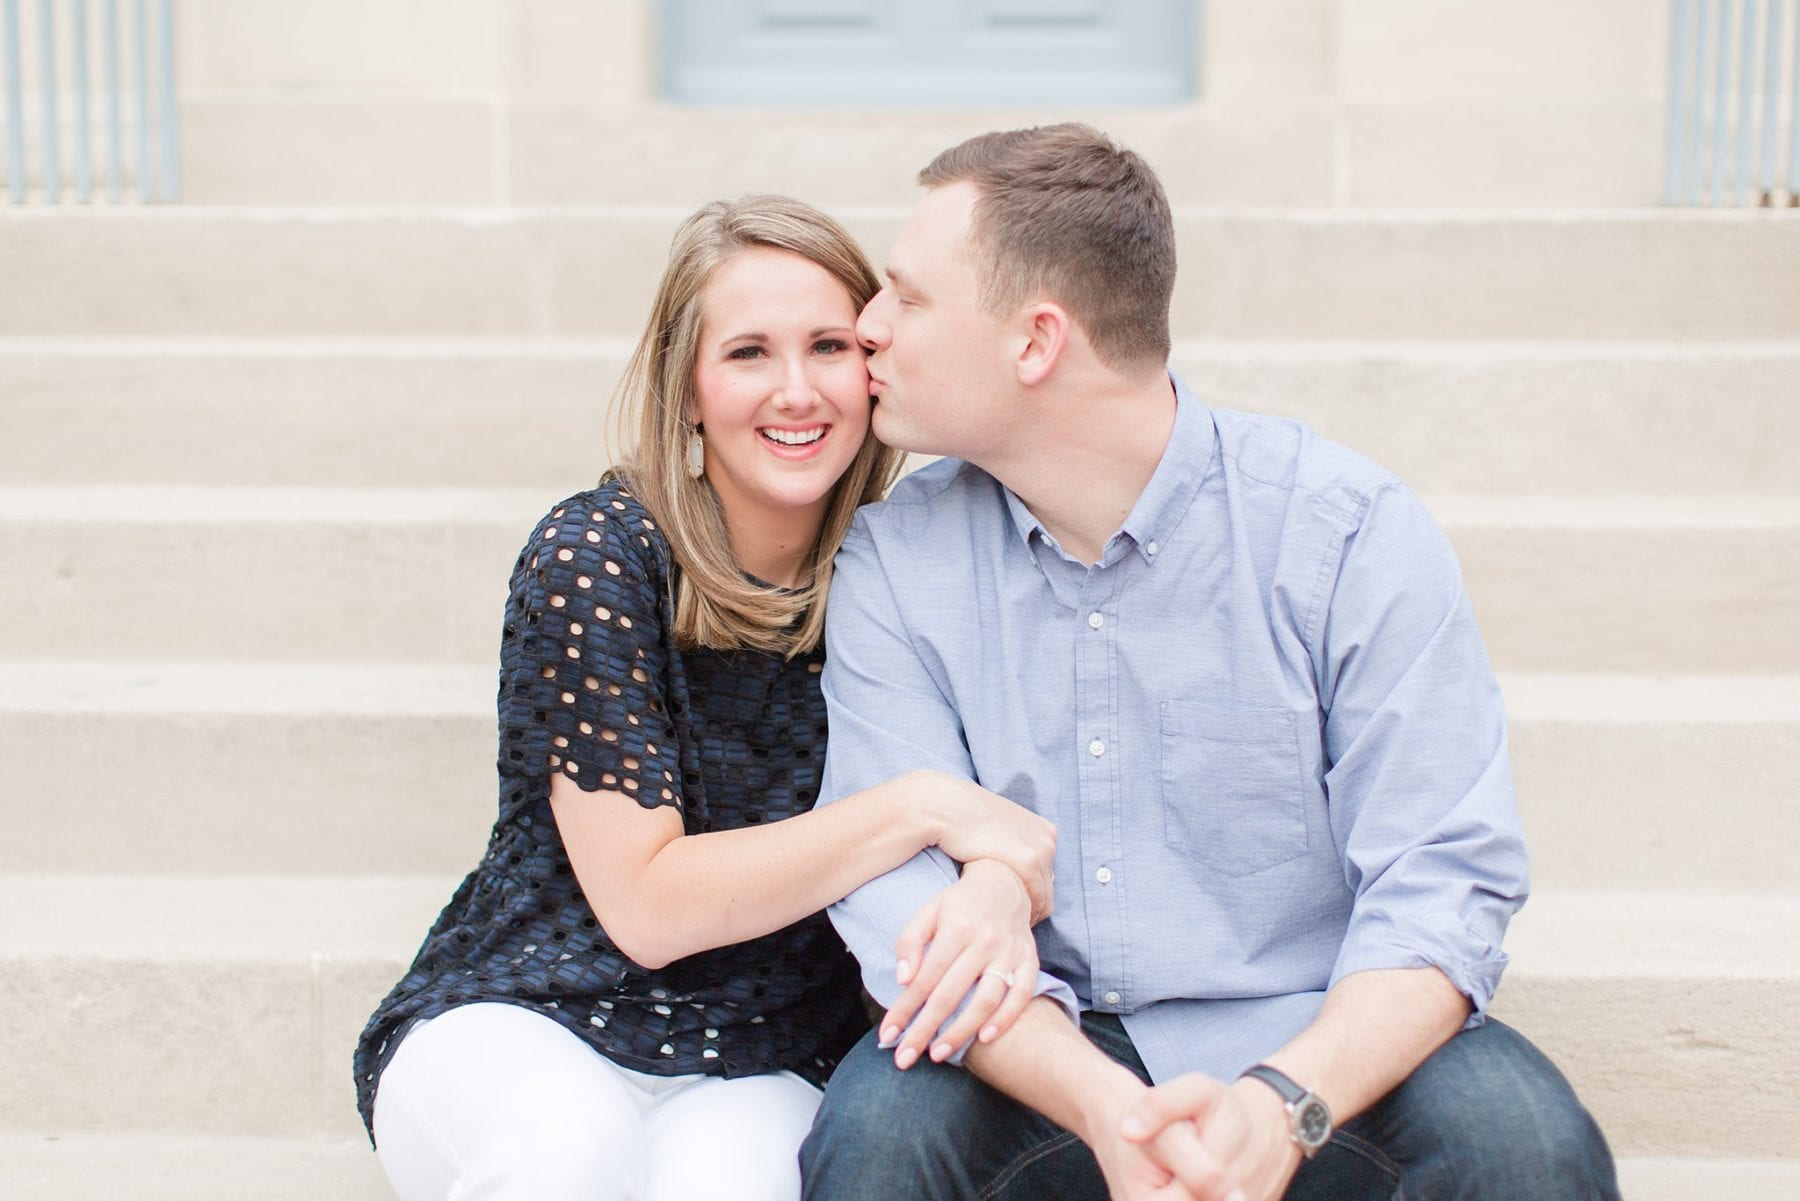 Springtime Old Town Alexandria Engagement Session Matt & Maxie Megan Kelsey Photography-281.jpg